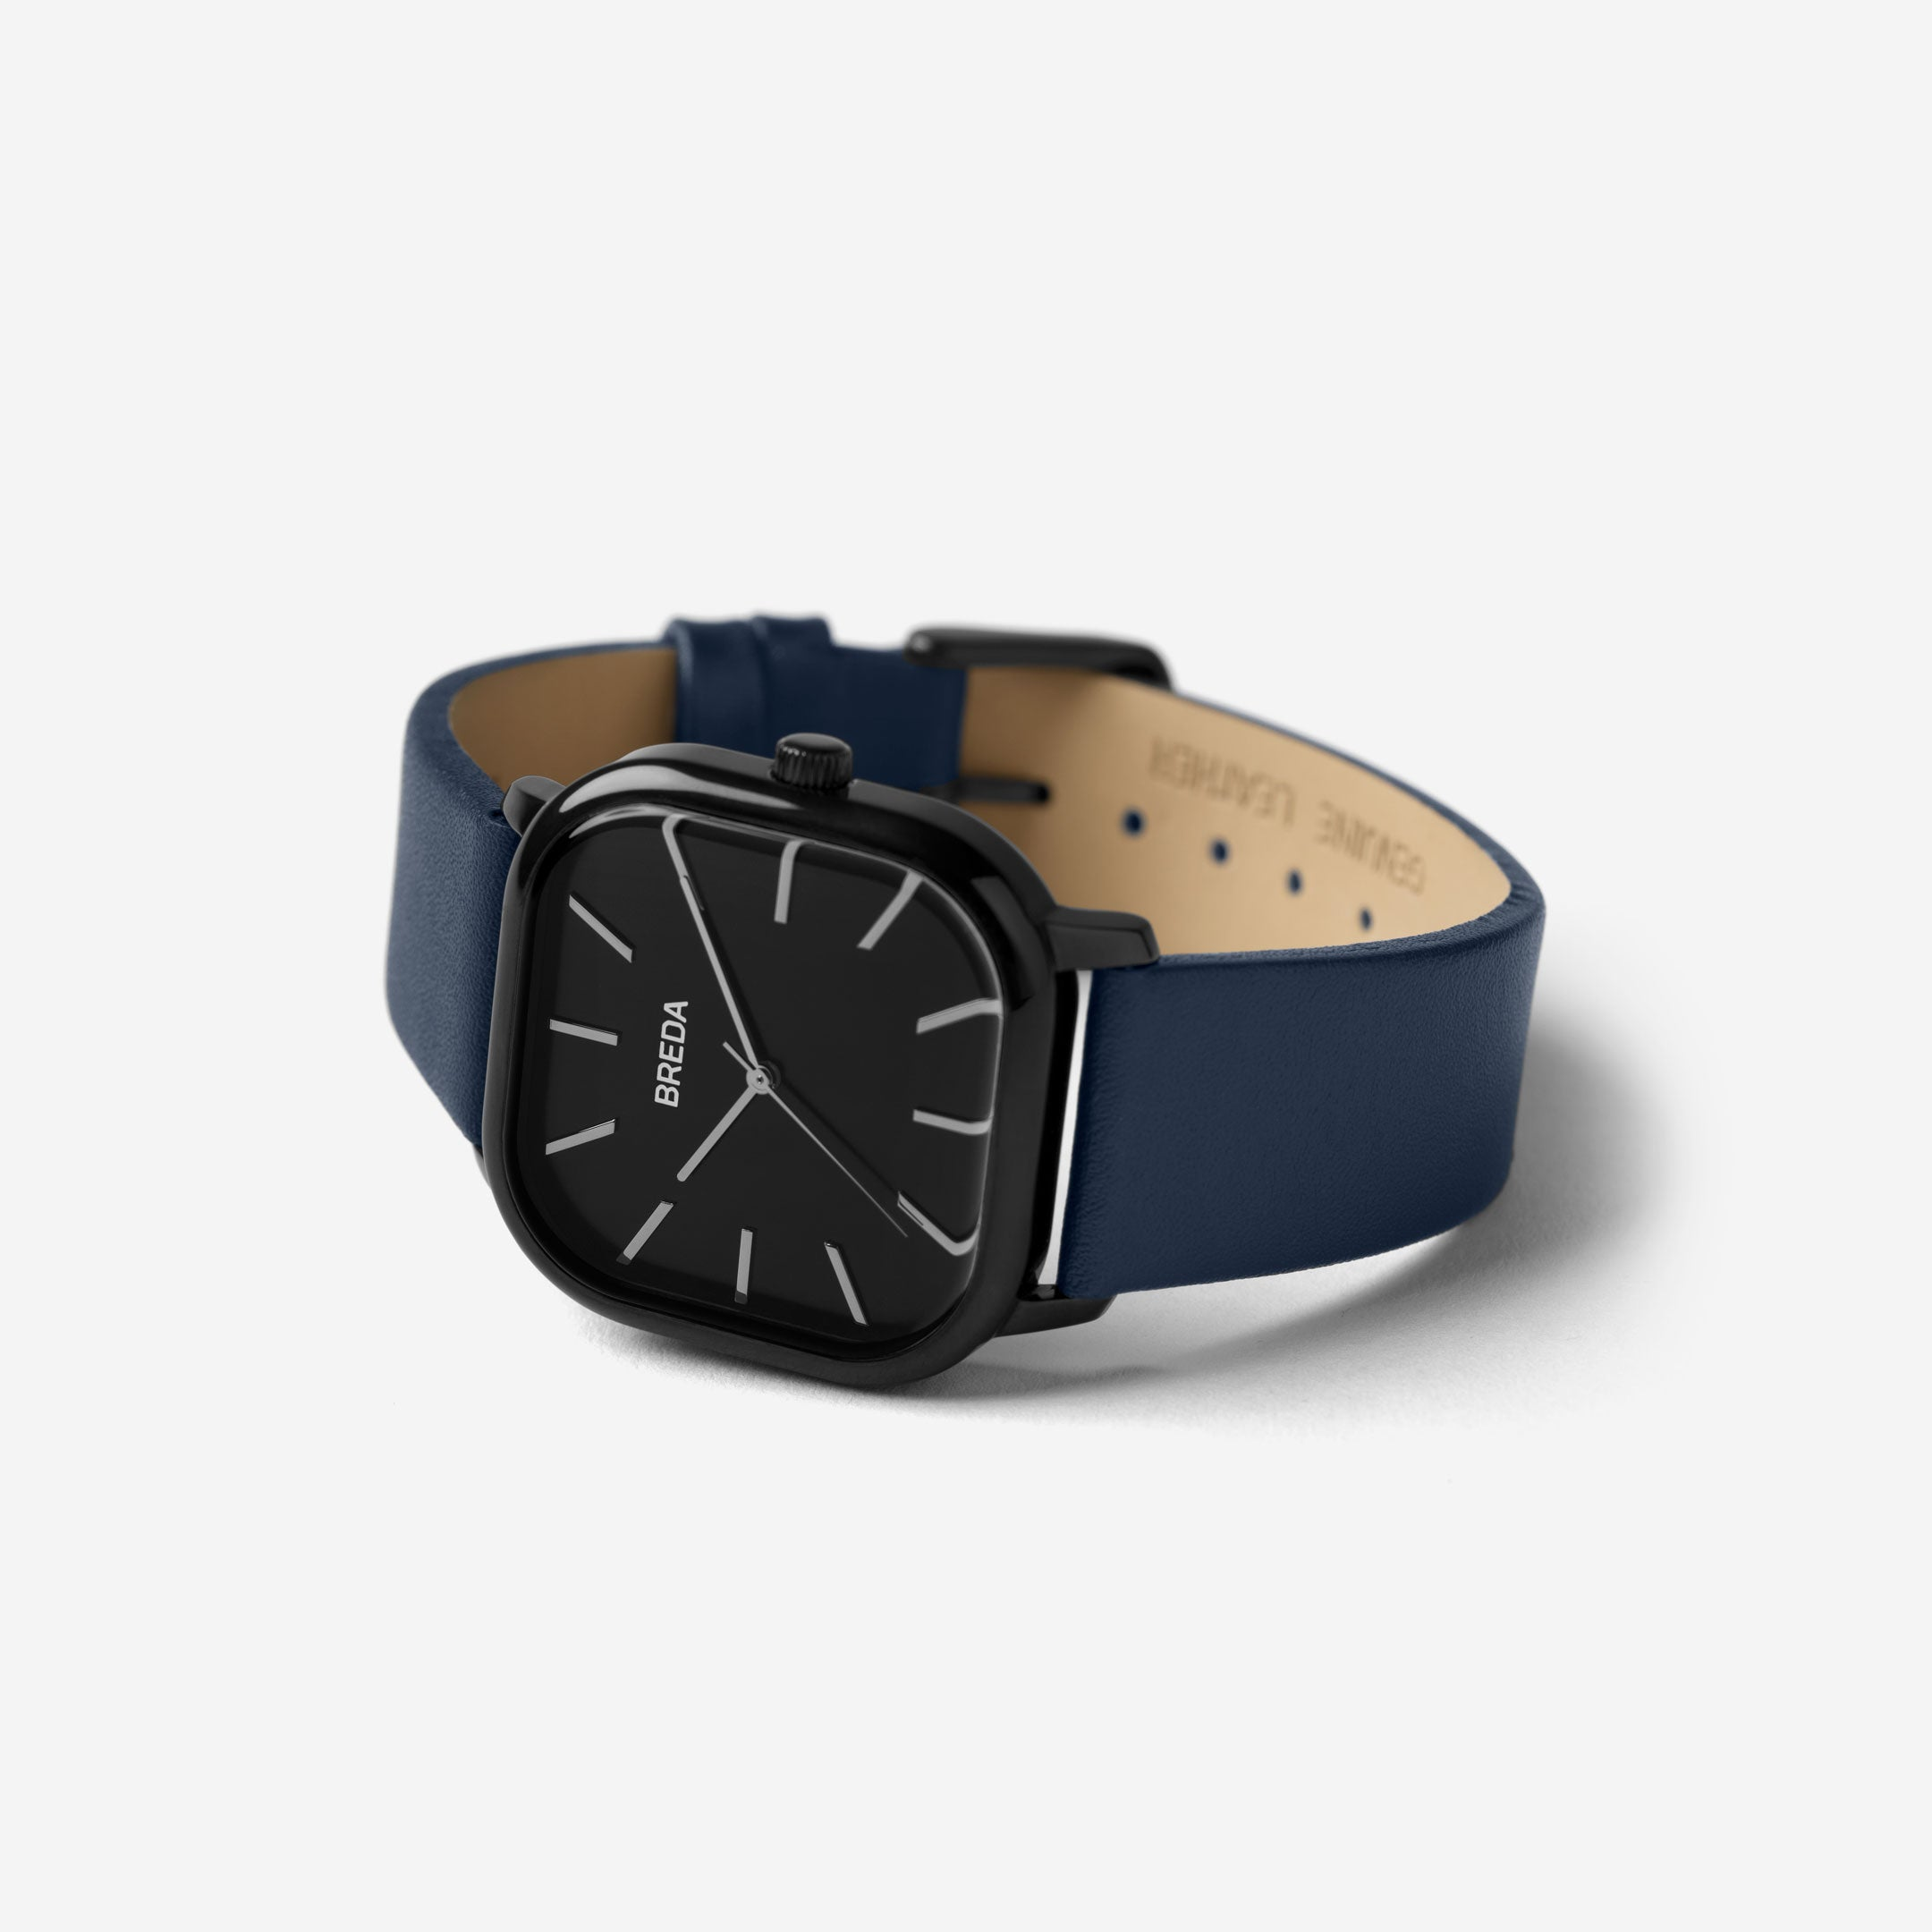 //cdn.shopify.com/s/files/1/0879/6650/products/breda-visser-1728d-black-navy-leather-watch-angle_1024x1024.jpg?v=1506957501